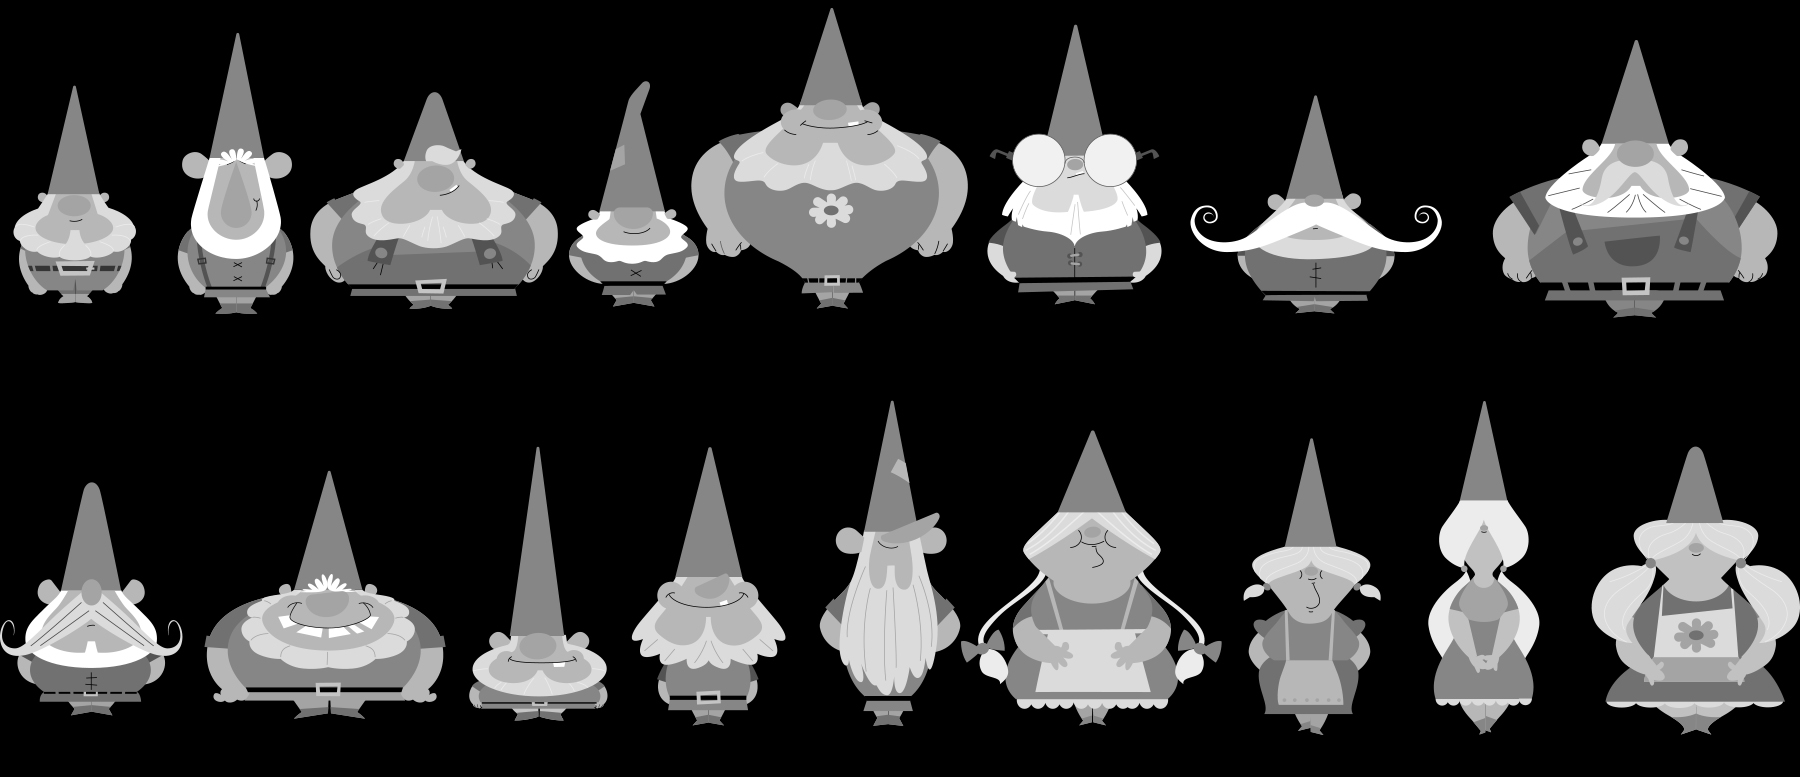 Design explorations of the gnomes' basic silhouettes and shapes.